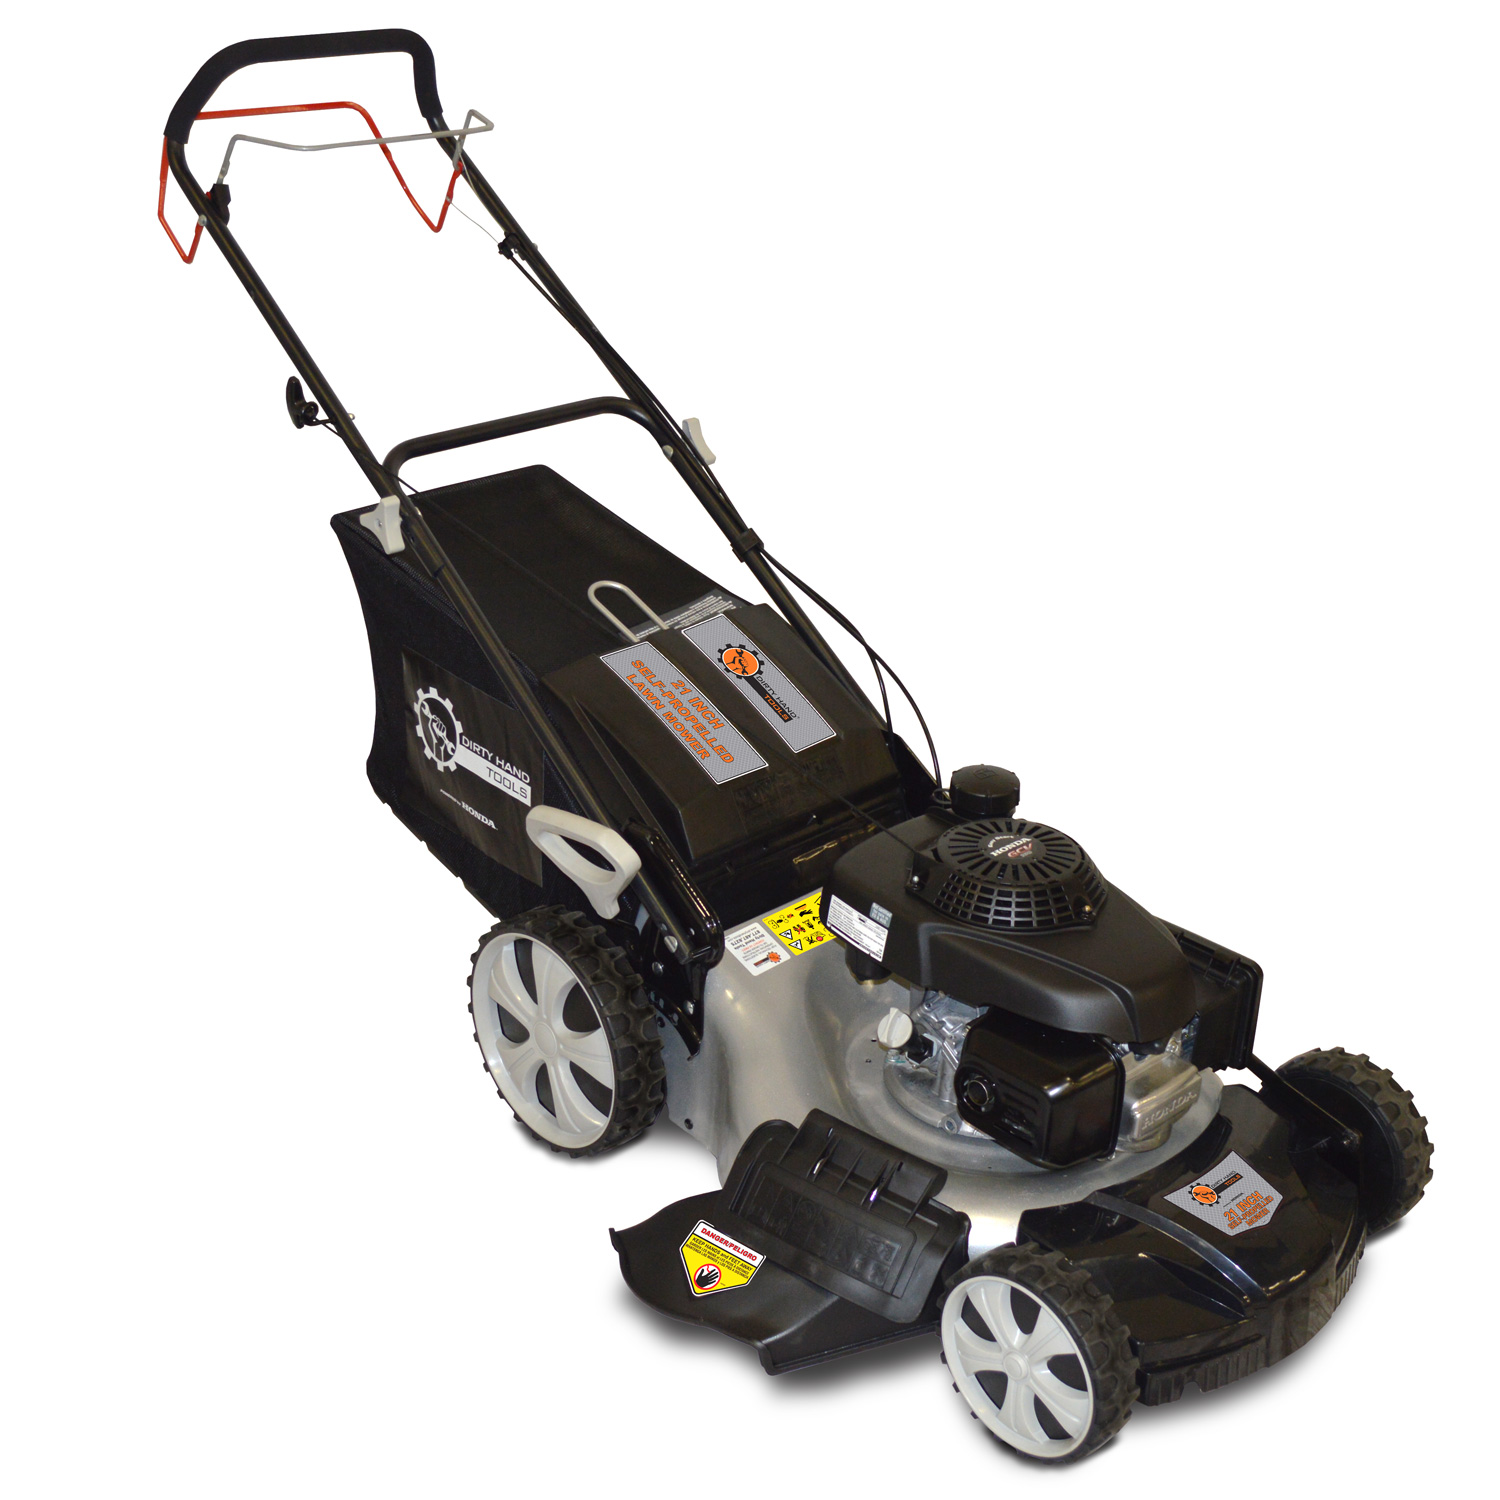 Dirty Hand Tools 21 in. self-propelled Lawn Mower – Honda Engine | Dirty Hand Tools